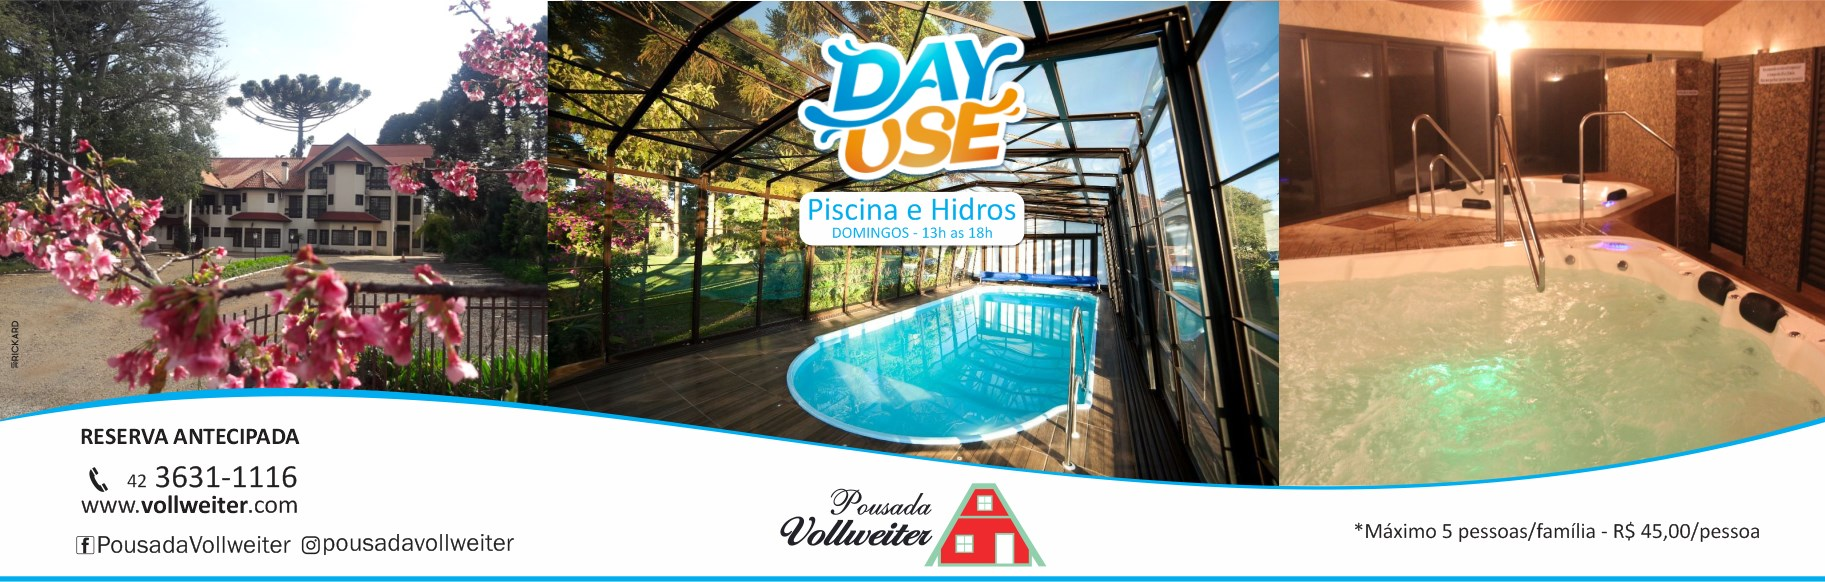 Pousada-Vollweiter-day-use-piscina-banner-site-LEVE.jpg